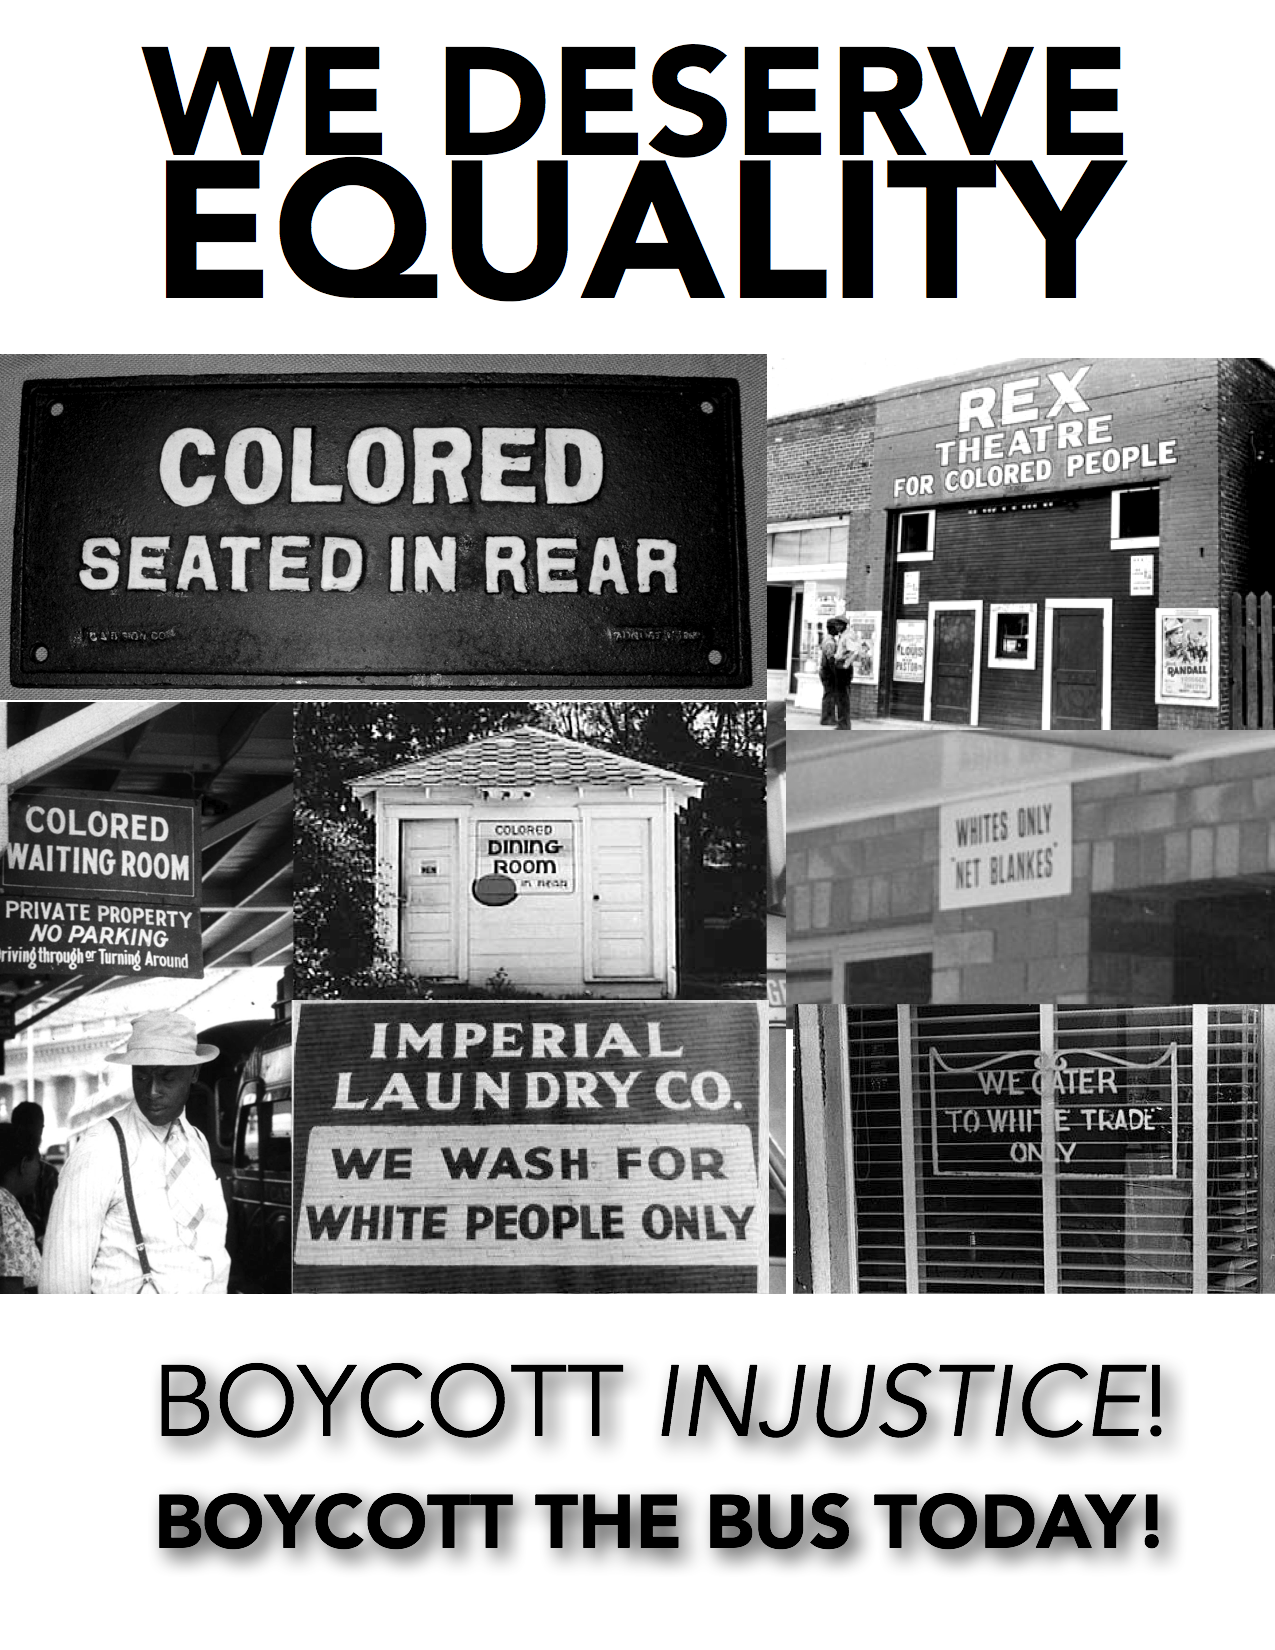 Monica-Humanities-Bus-Boycott-Poster.png